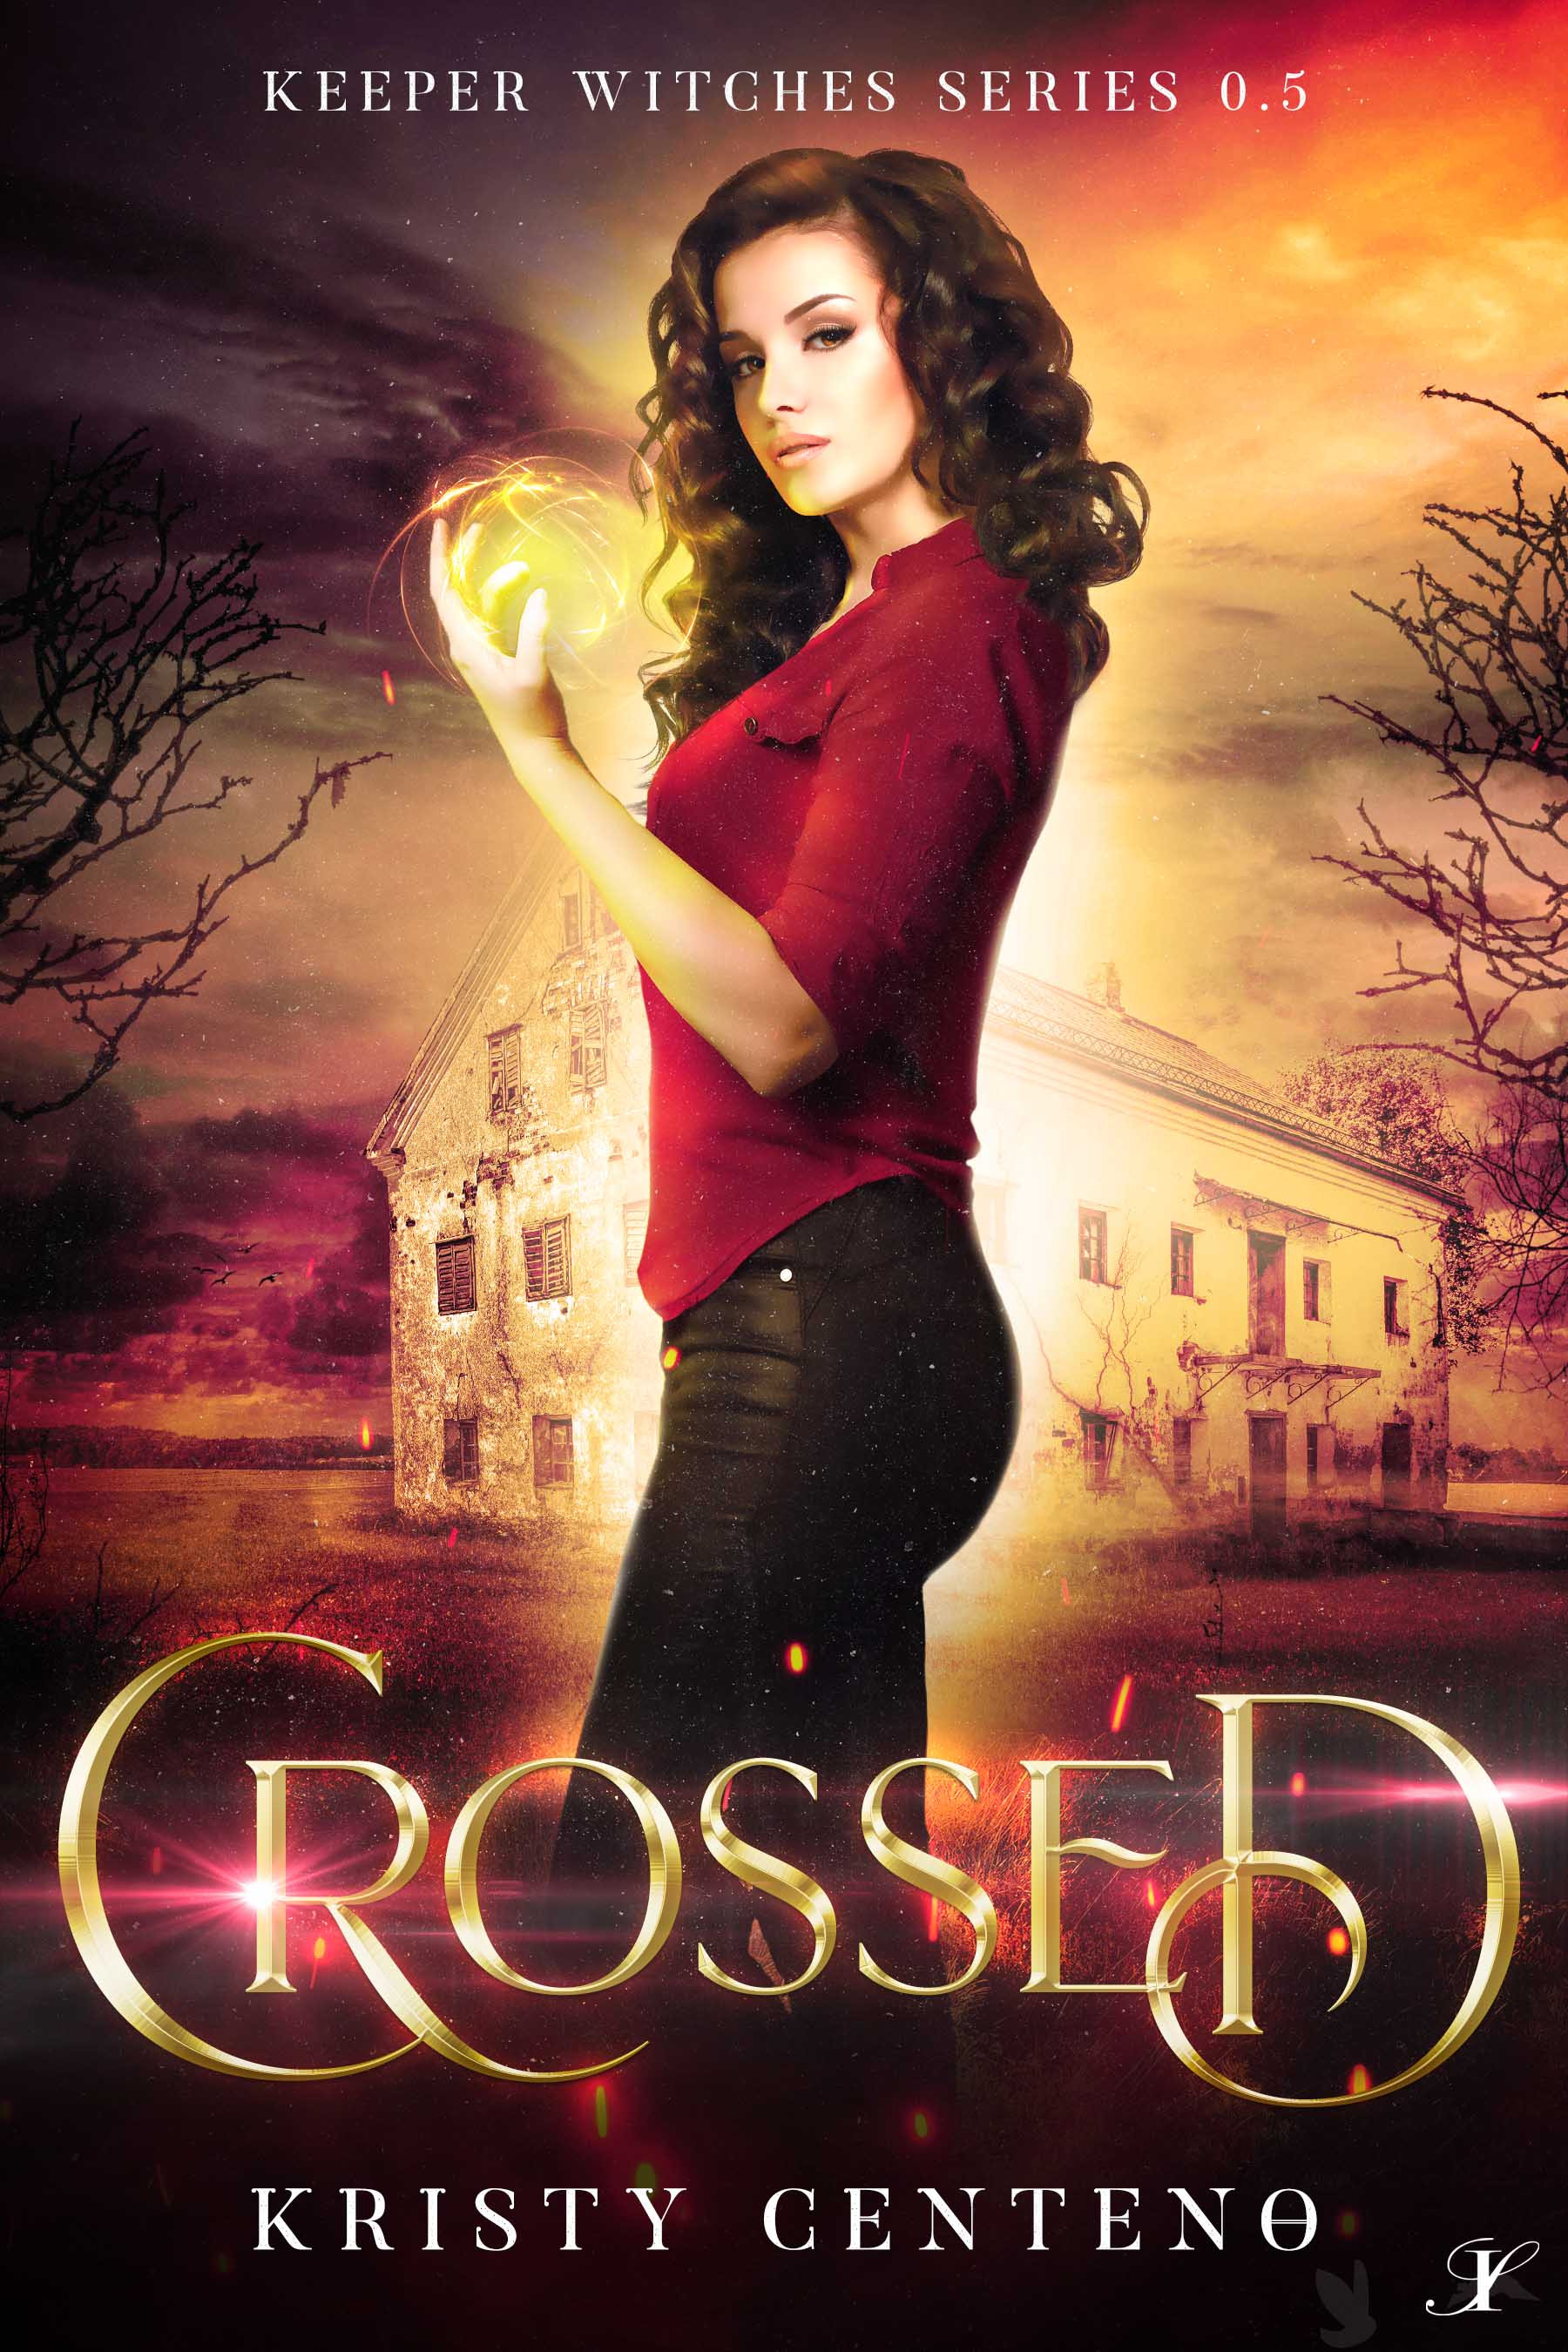 Crossed (Keeper Witches 0.5)